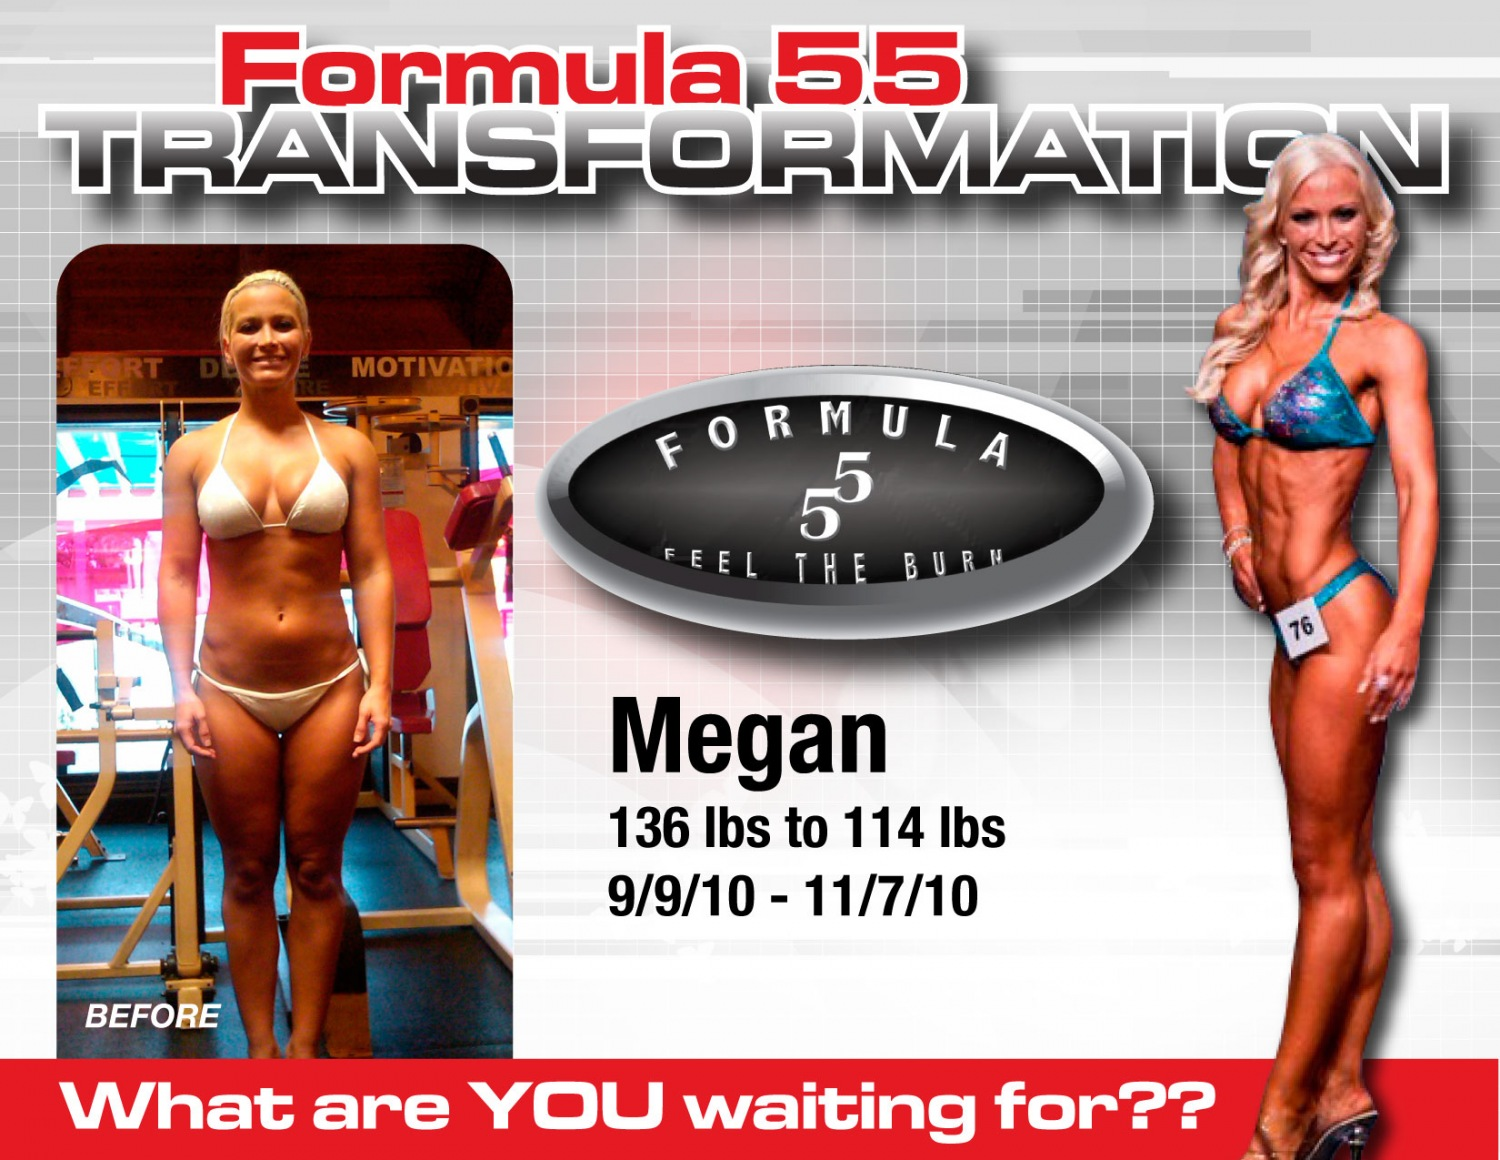 form-55-Transformation-Megan-front.jpg